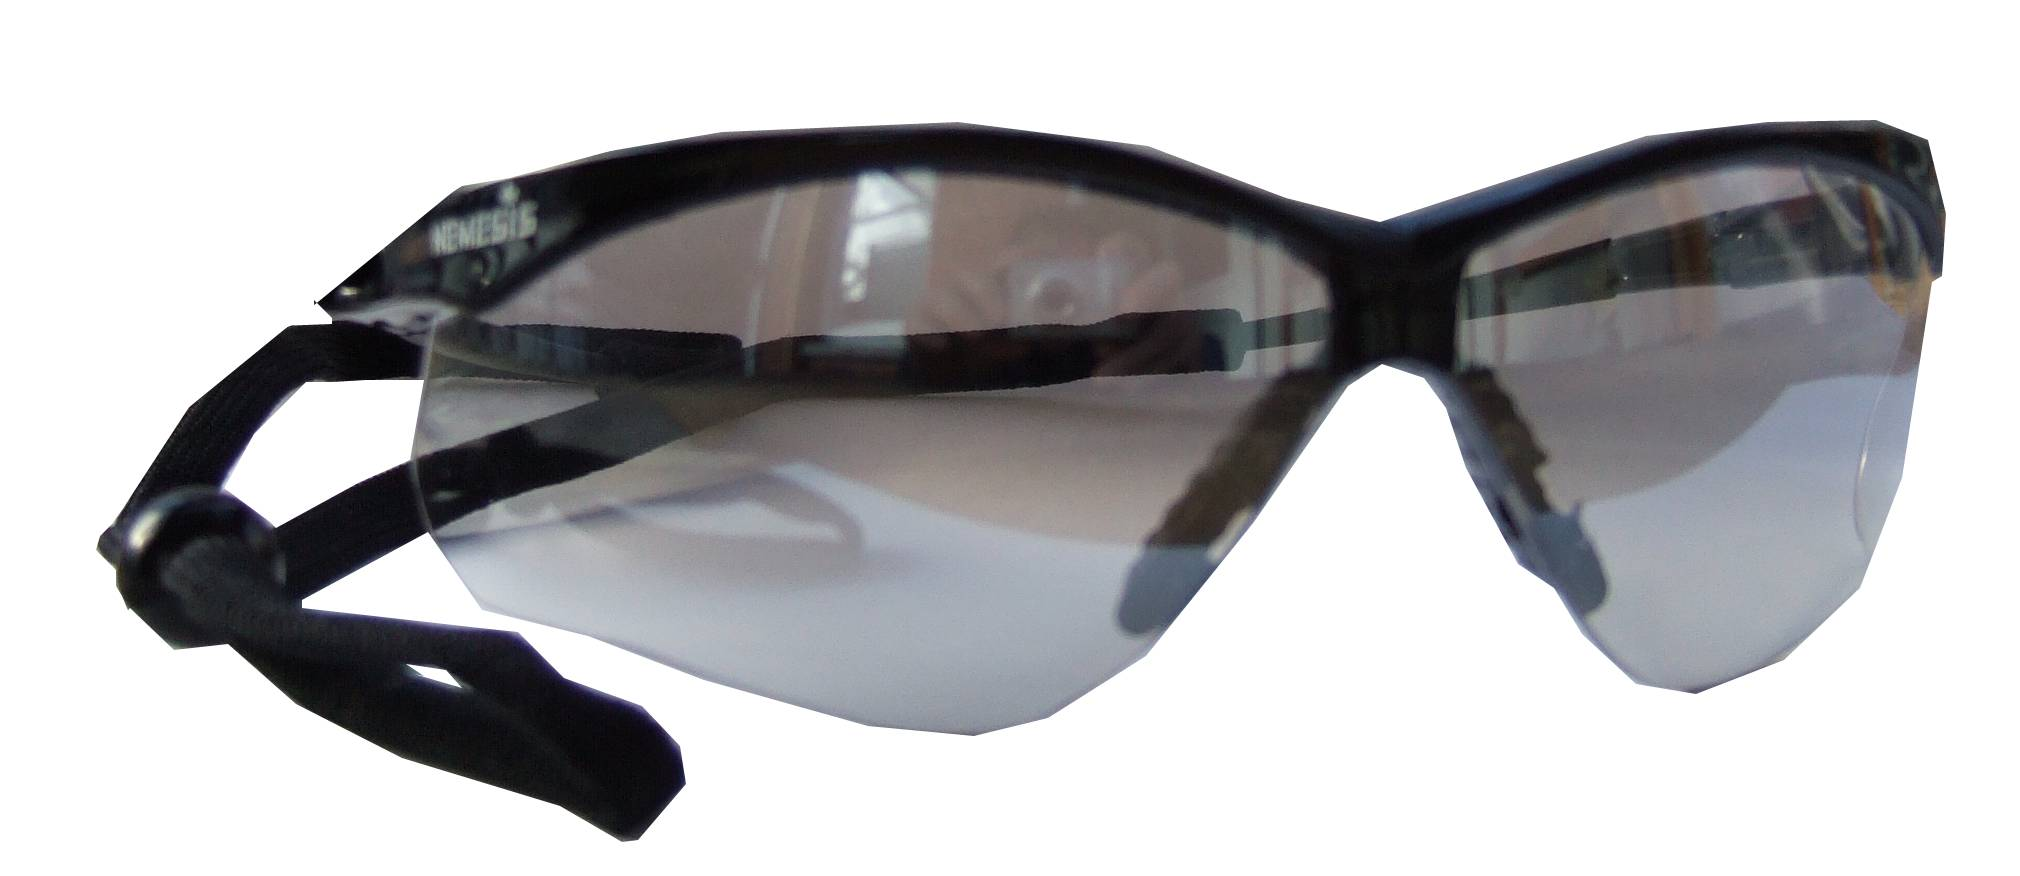 fb52a44cef Jackson Safety Nemesis protective eyewear with in outdoor lenses.